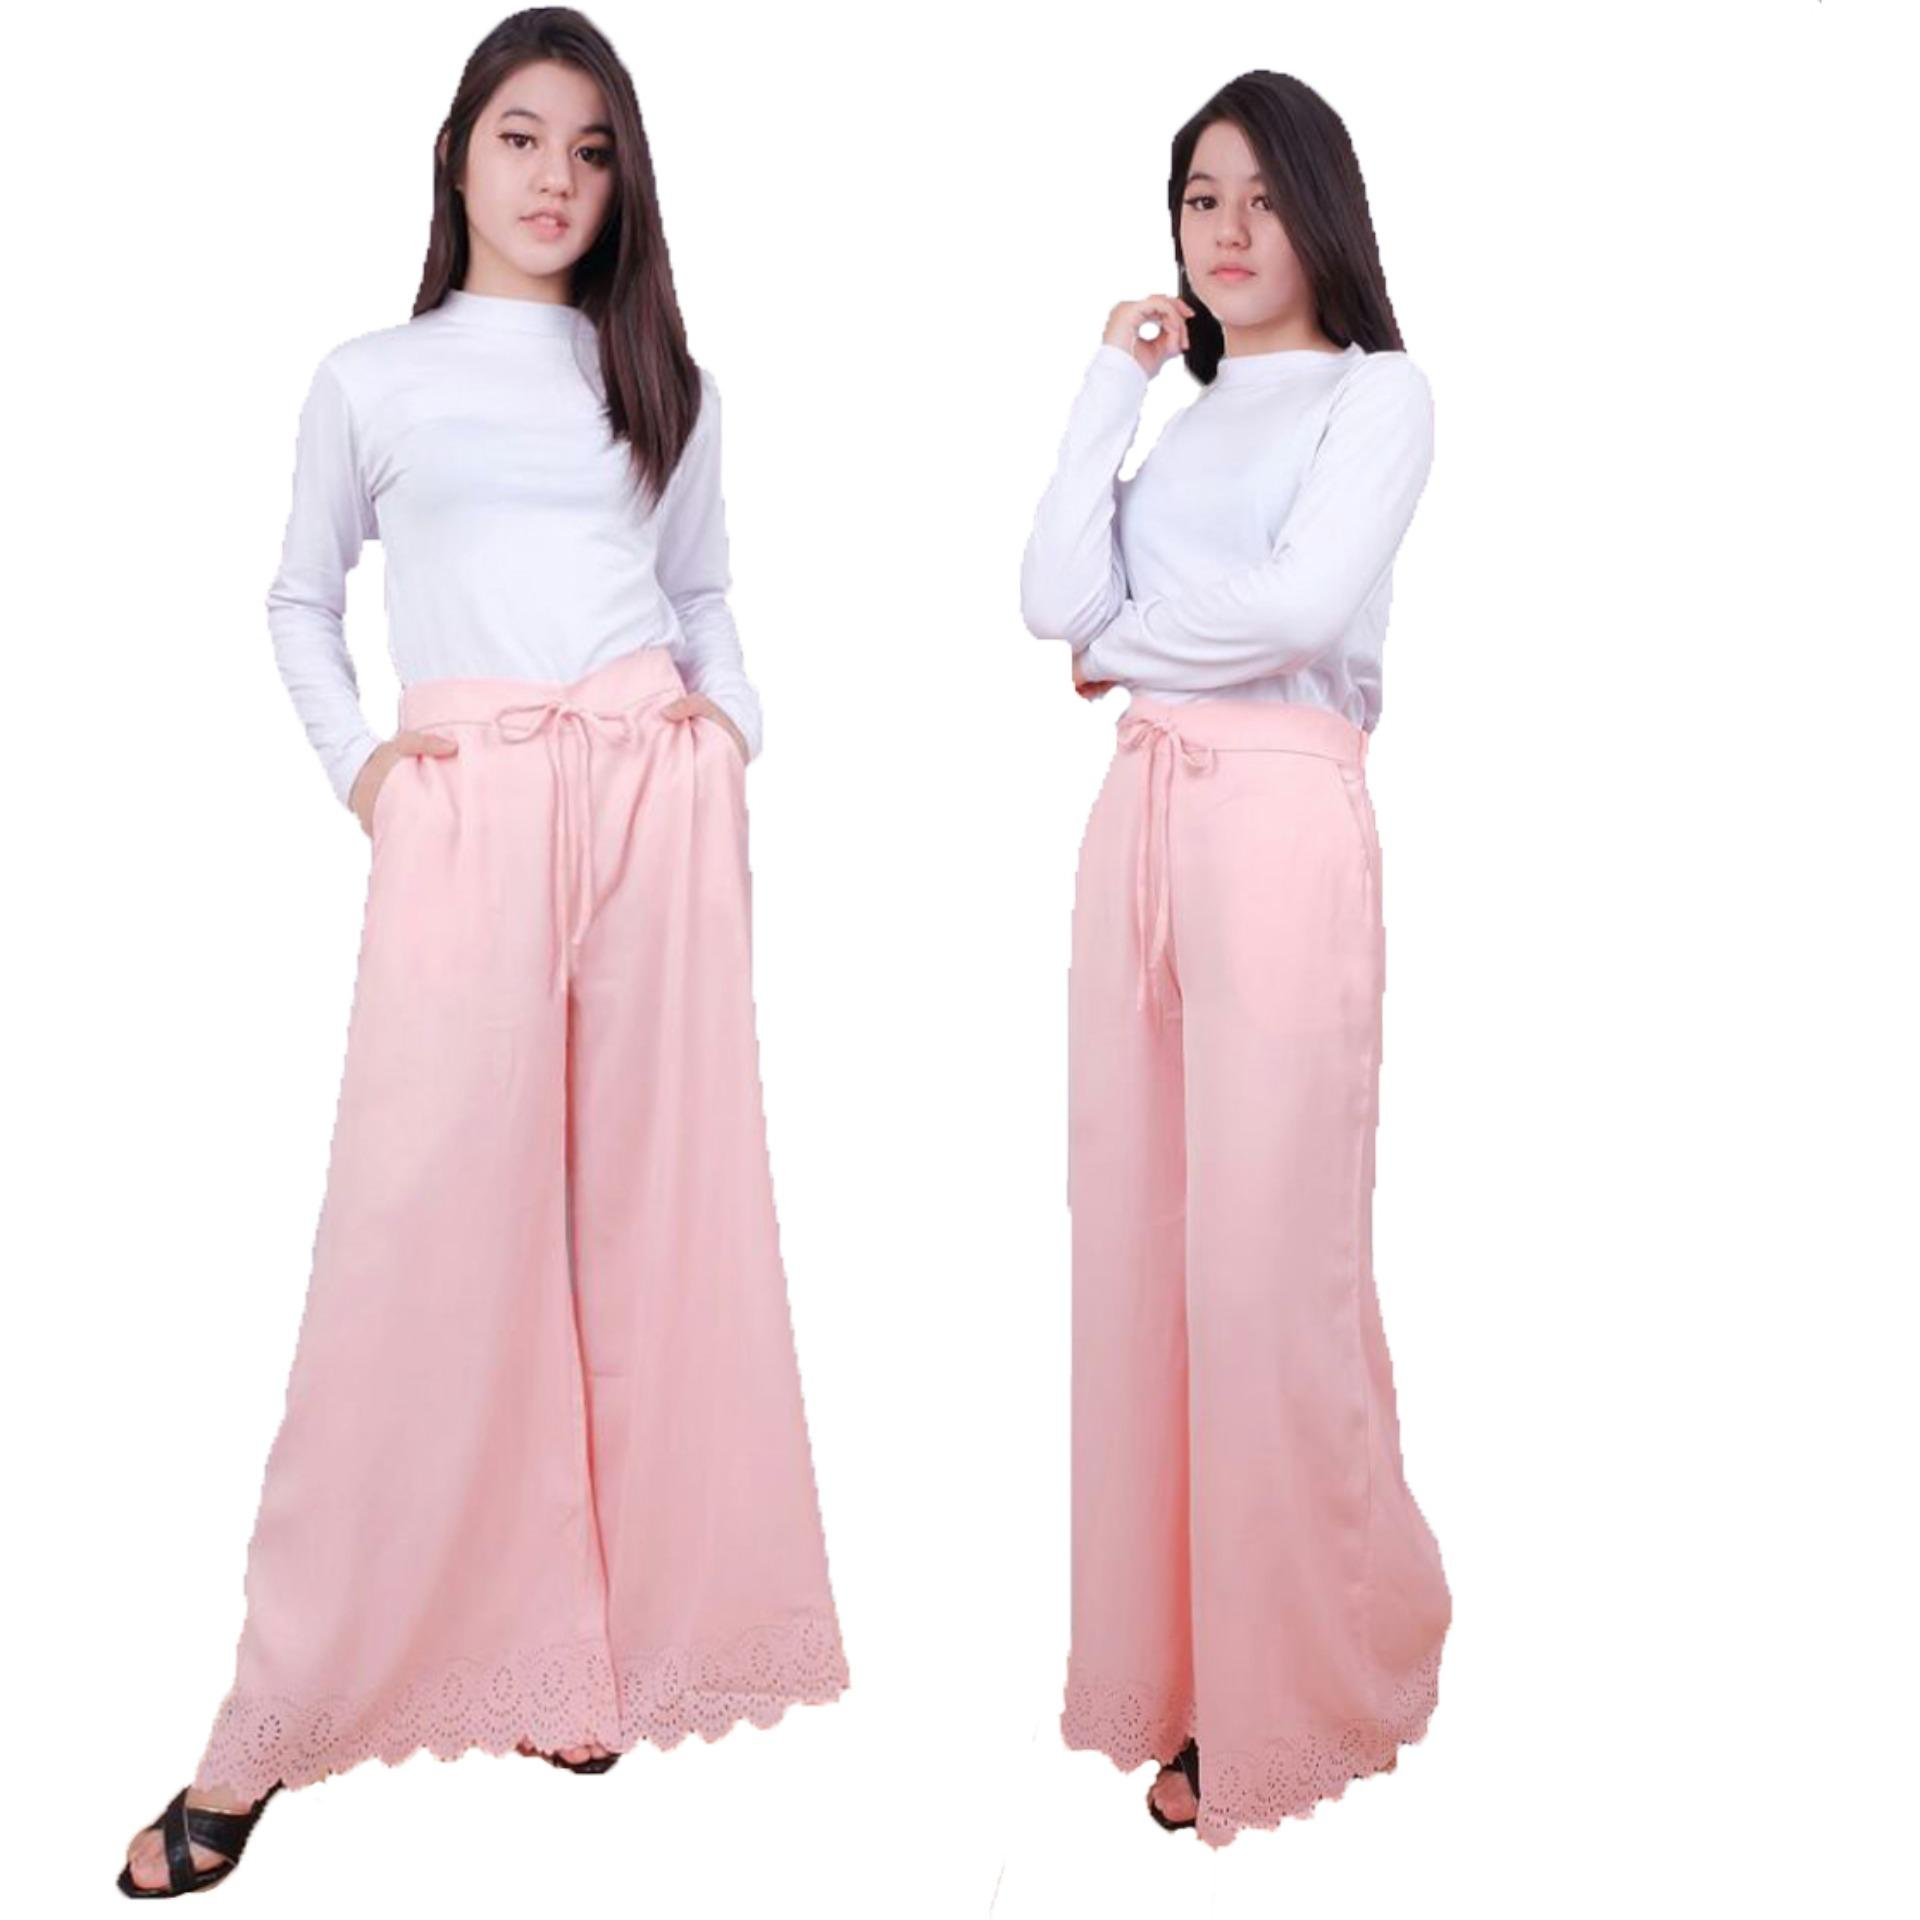 Jo Nic Pleated Flare Maxi Skirt Rok Hijab Fit To Big Size Maroon Wrapped A Line Long Btnl70254 Skirts Panjang Lipit Xl Cream Source